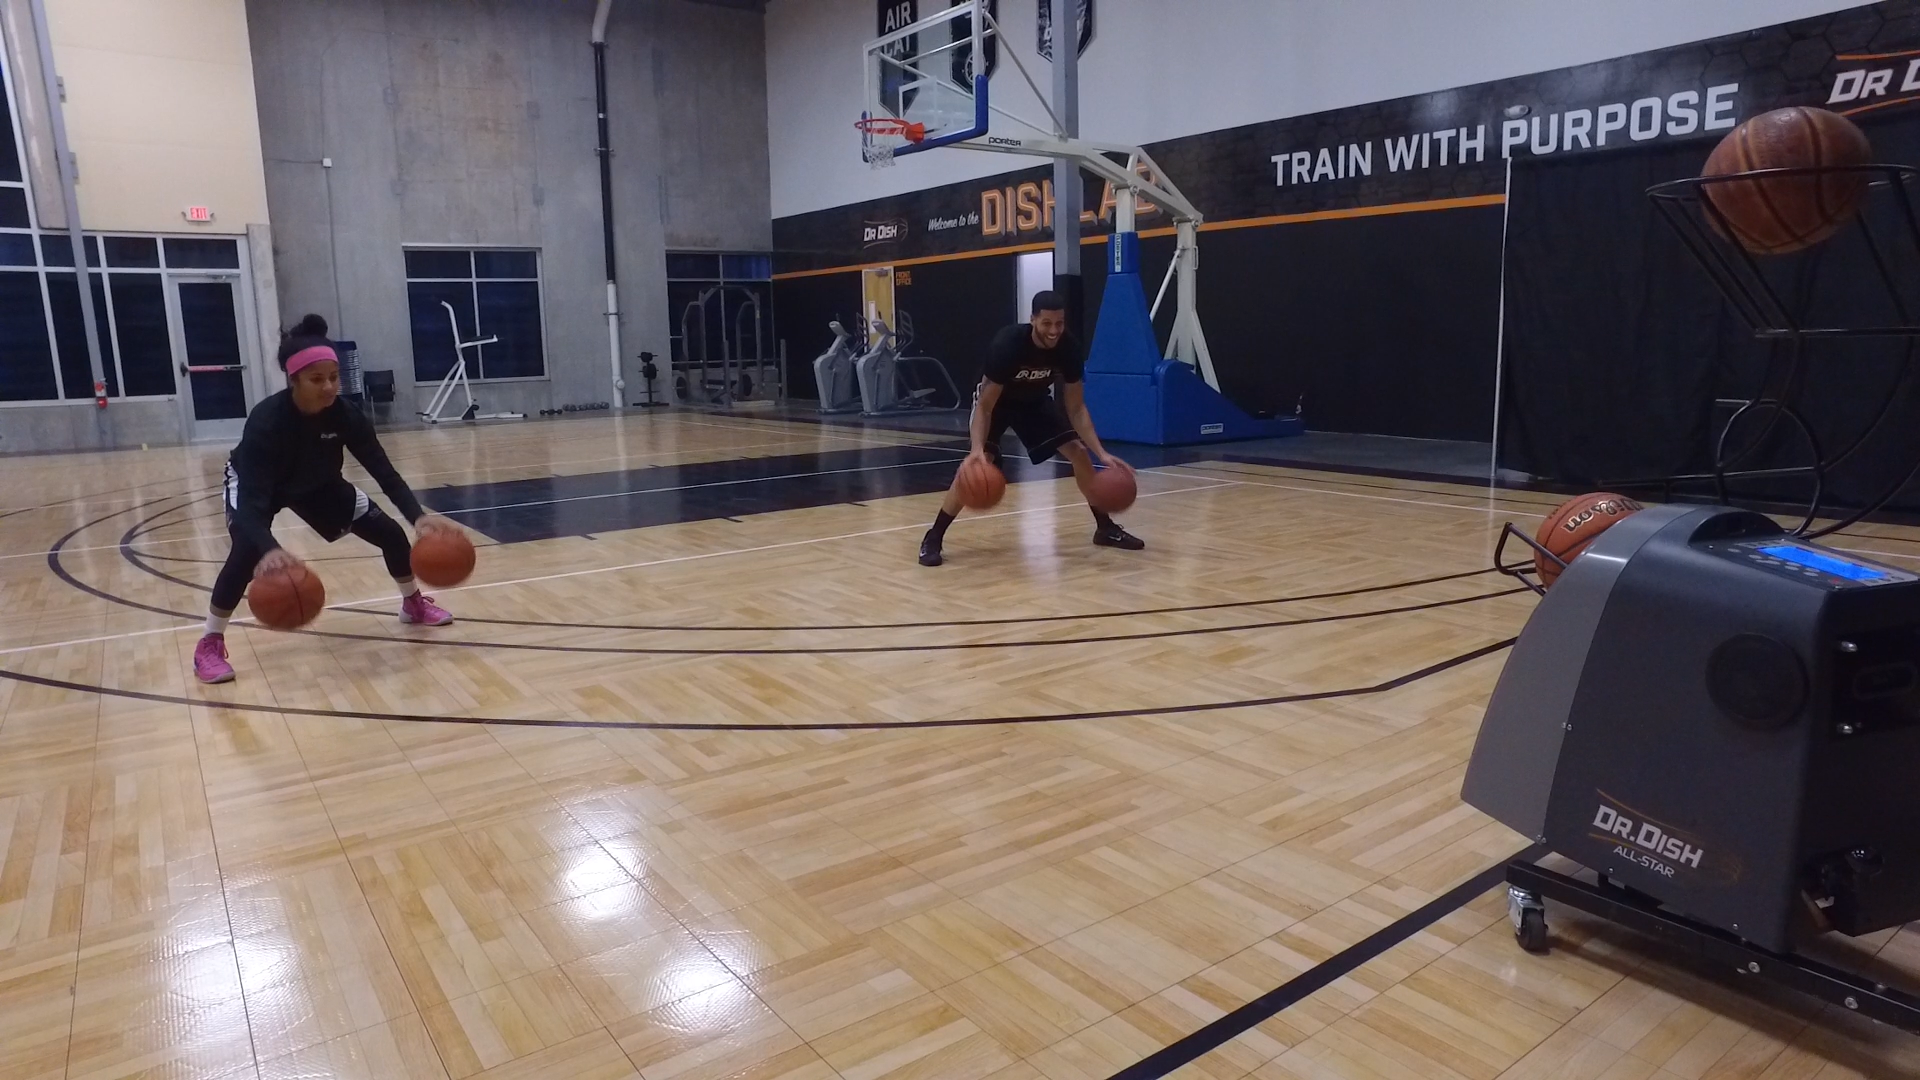 Basketball Drills: 30 Minute Partner Workout on Dr. Dish